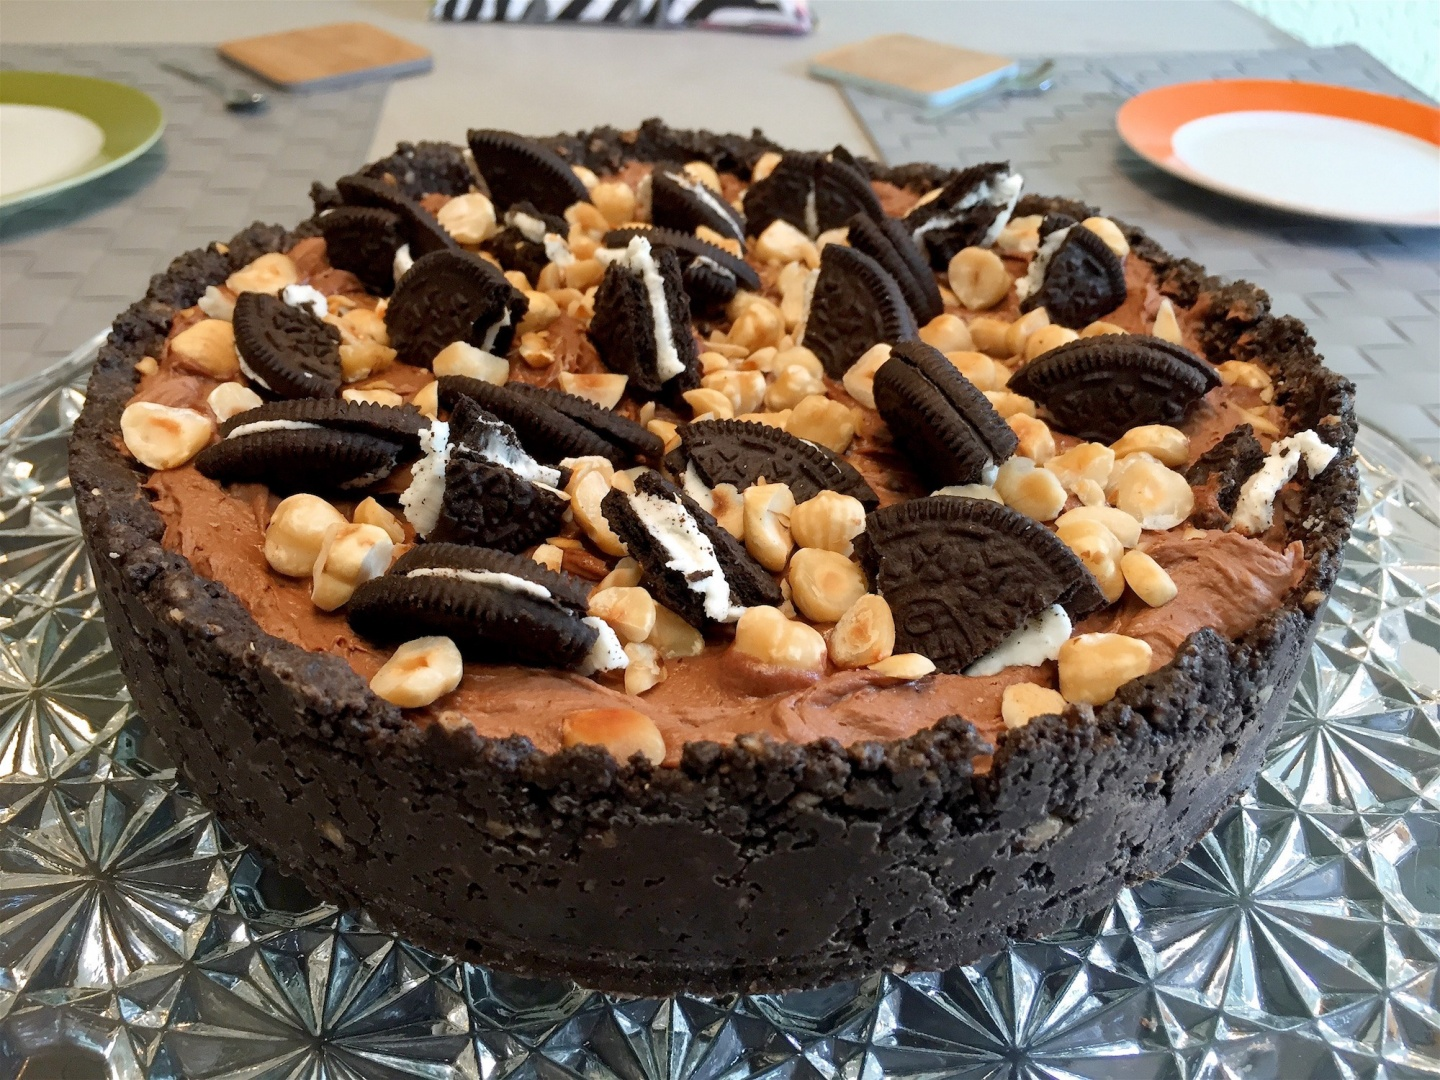 De Nutella cheesecake